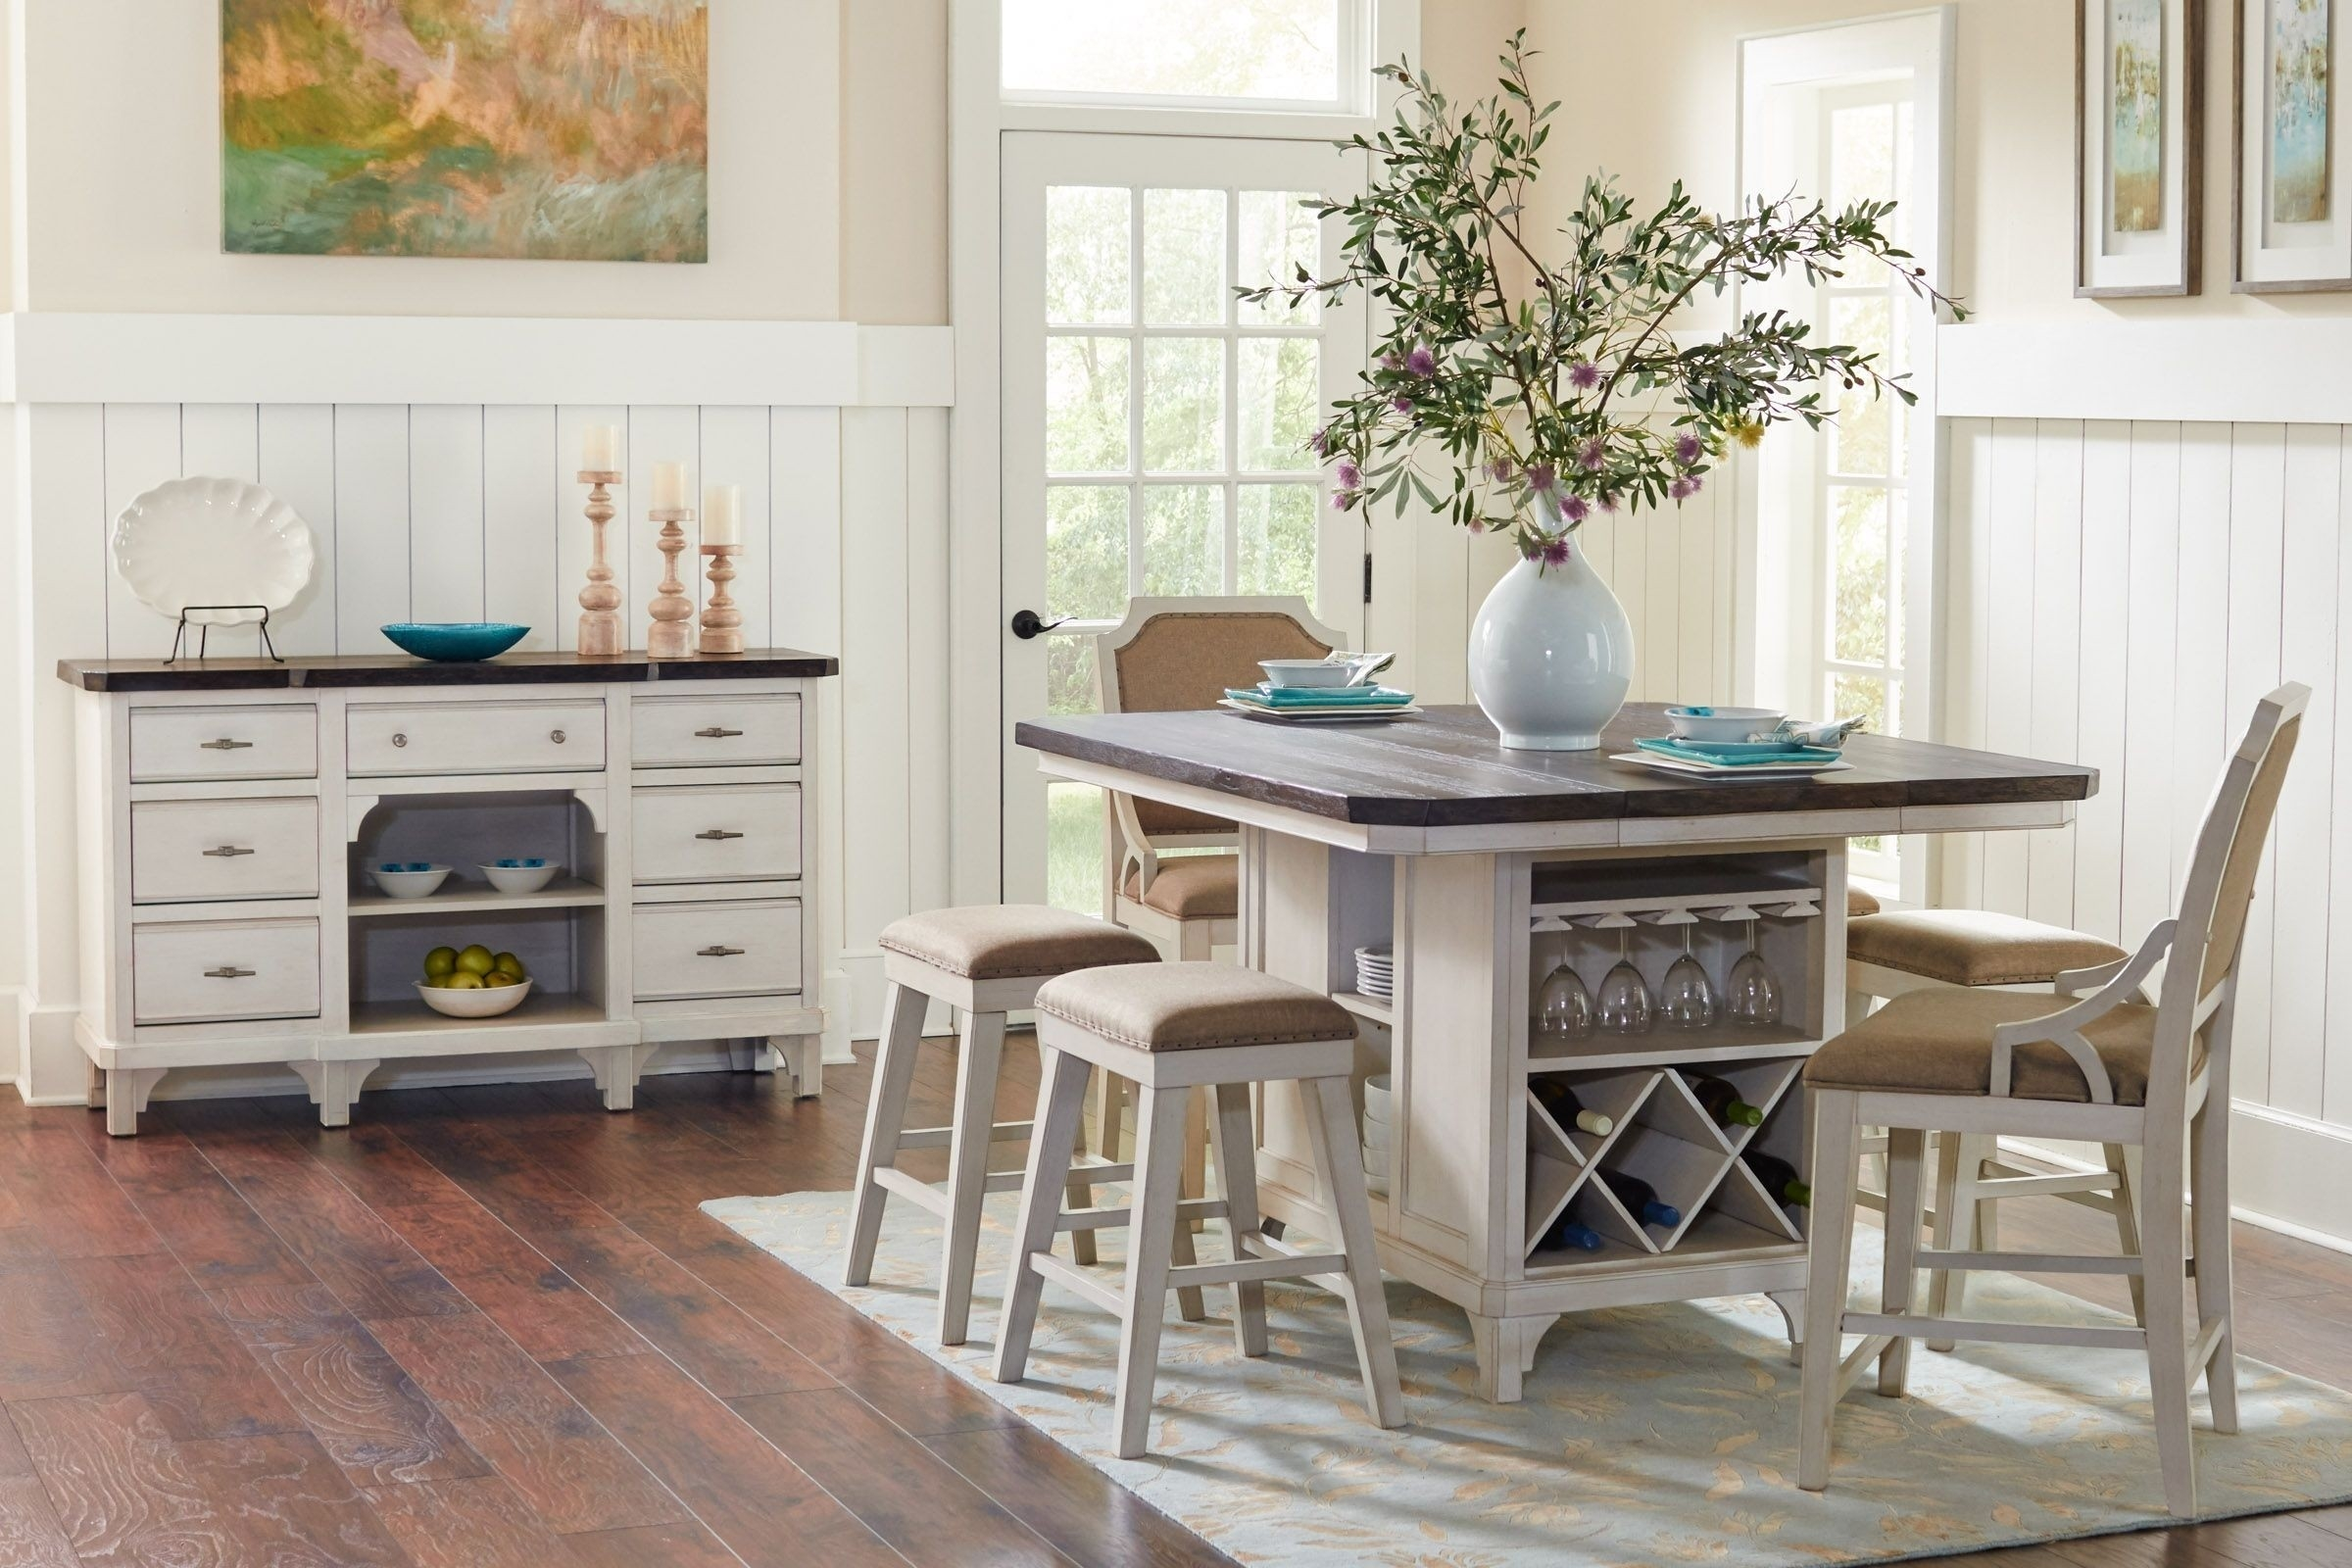 Kitchen Table With Storage Underneath for 3 - Ideas on Foter